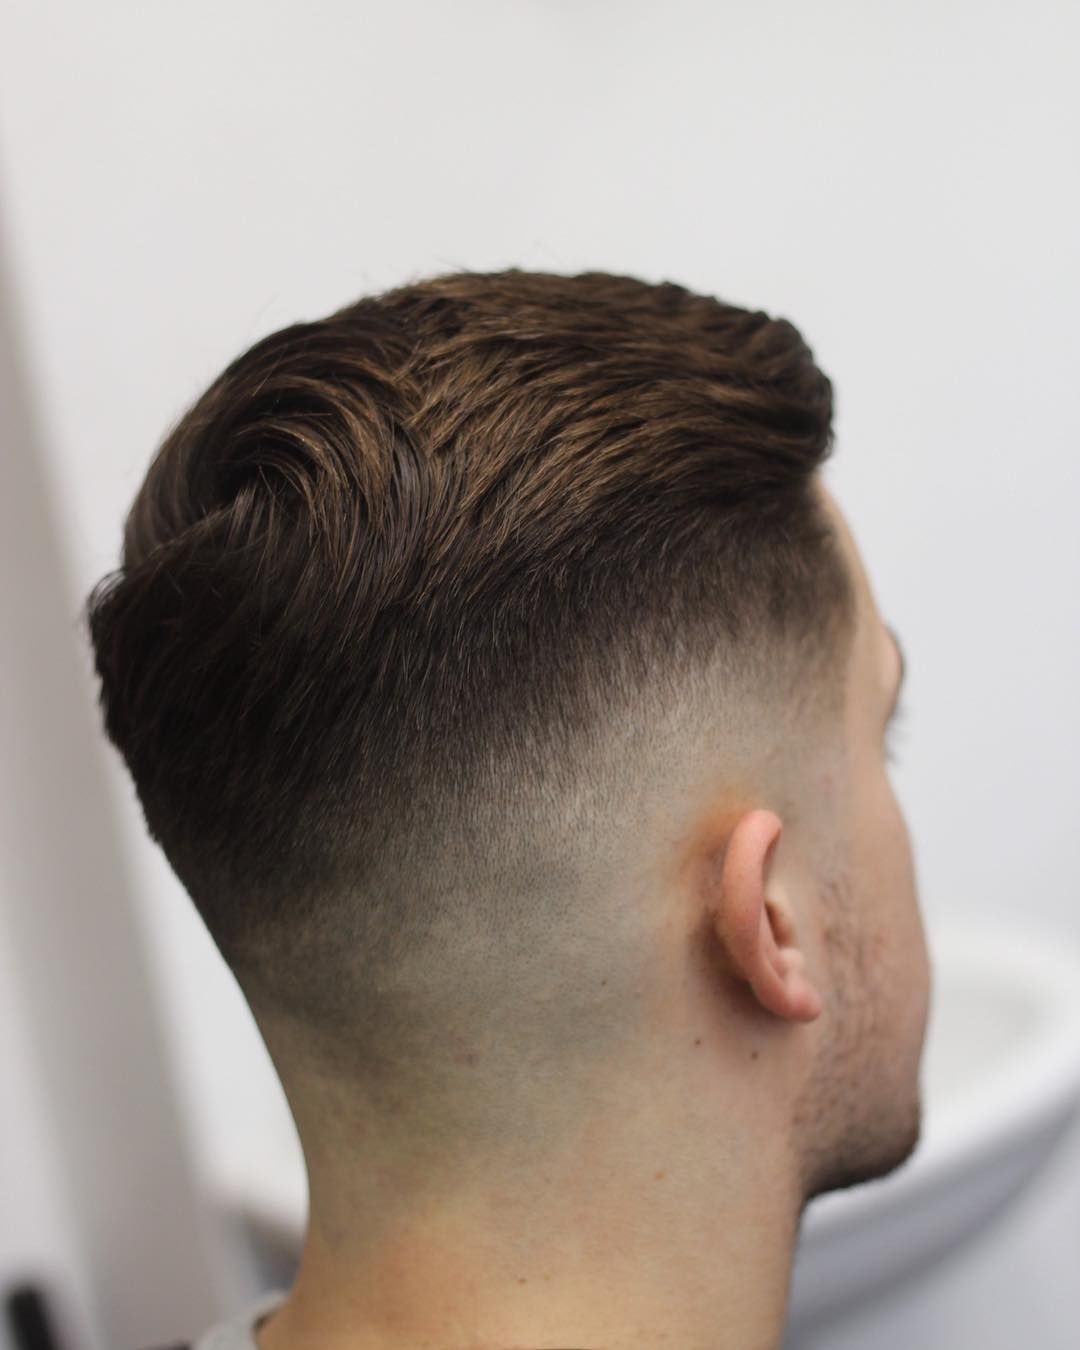 33 Best Men's Fade Haircuts For 2021